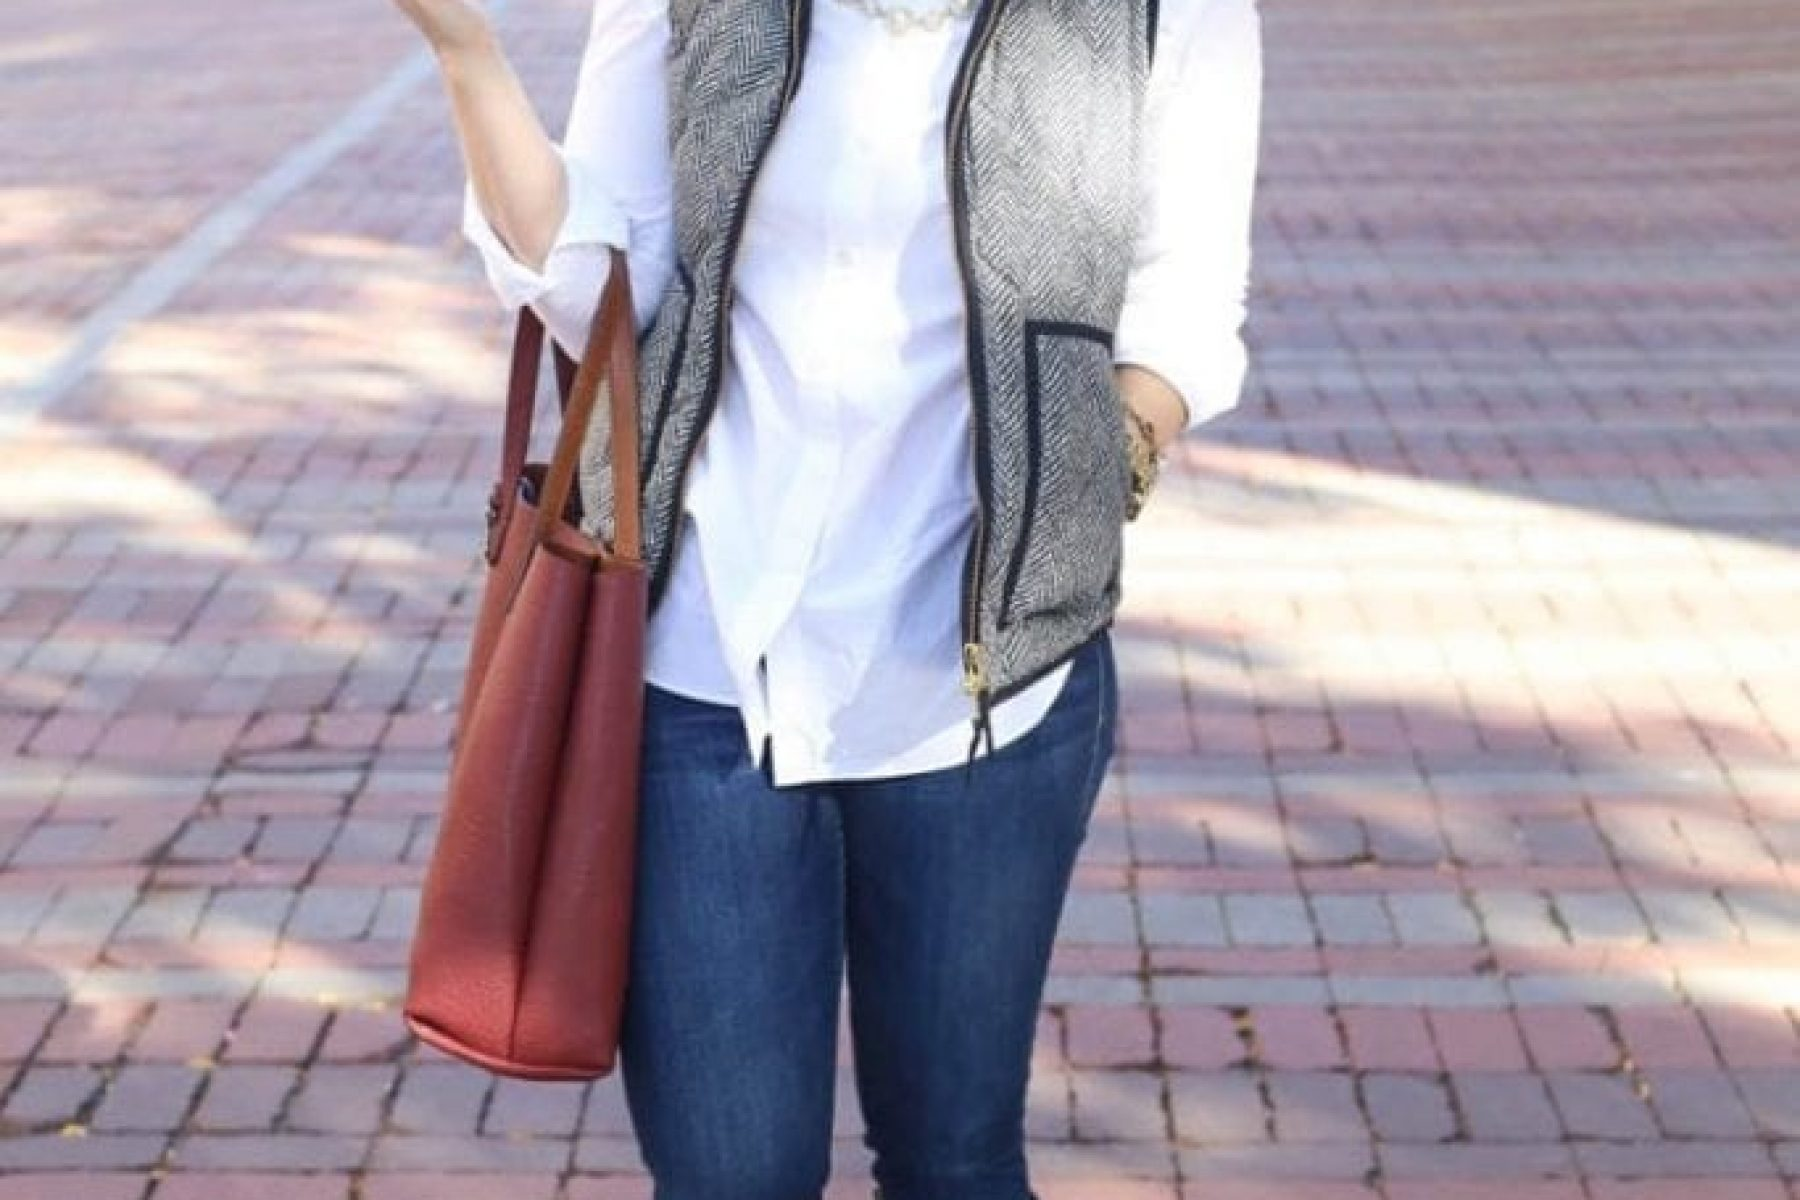 Vermont Fall Fashion Fall Maple Syrup Forever 21 Sweater Joes Jeans Madewell Tote J.Crew Puffer Vest 31